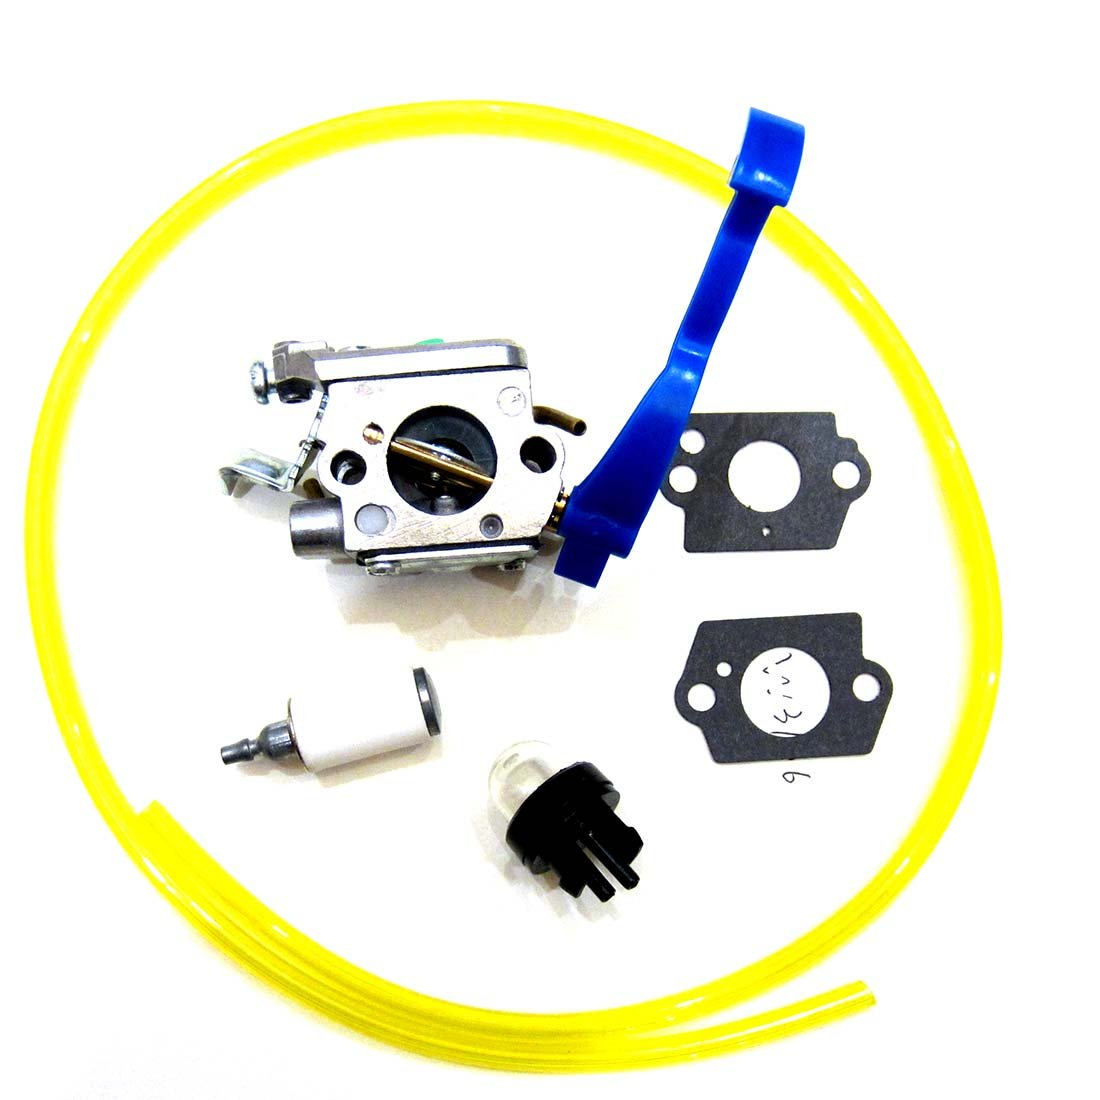 Carburetor & Fuel Line & Grommet for Husqvarna 125B 125BX 125BVX Leaf Blower Trimmer Zama C1Q-W37 Carb 545081811